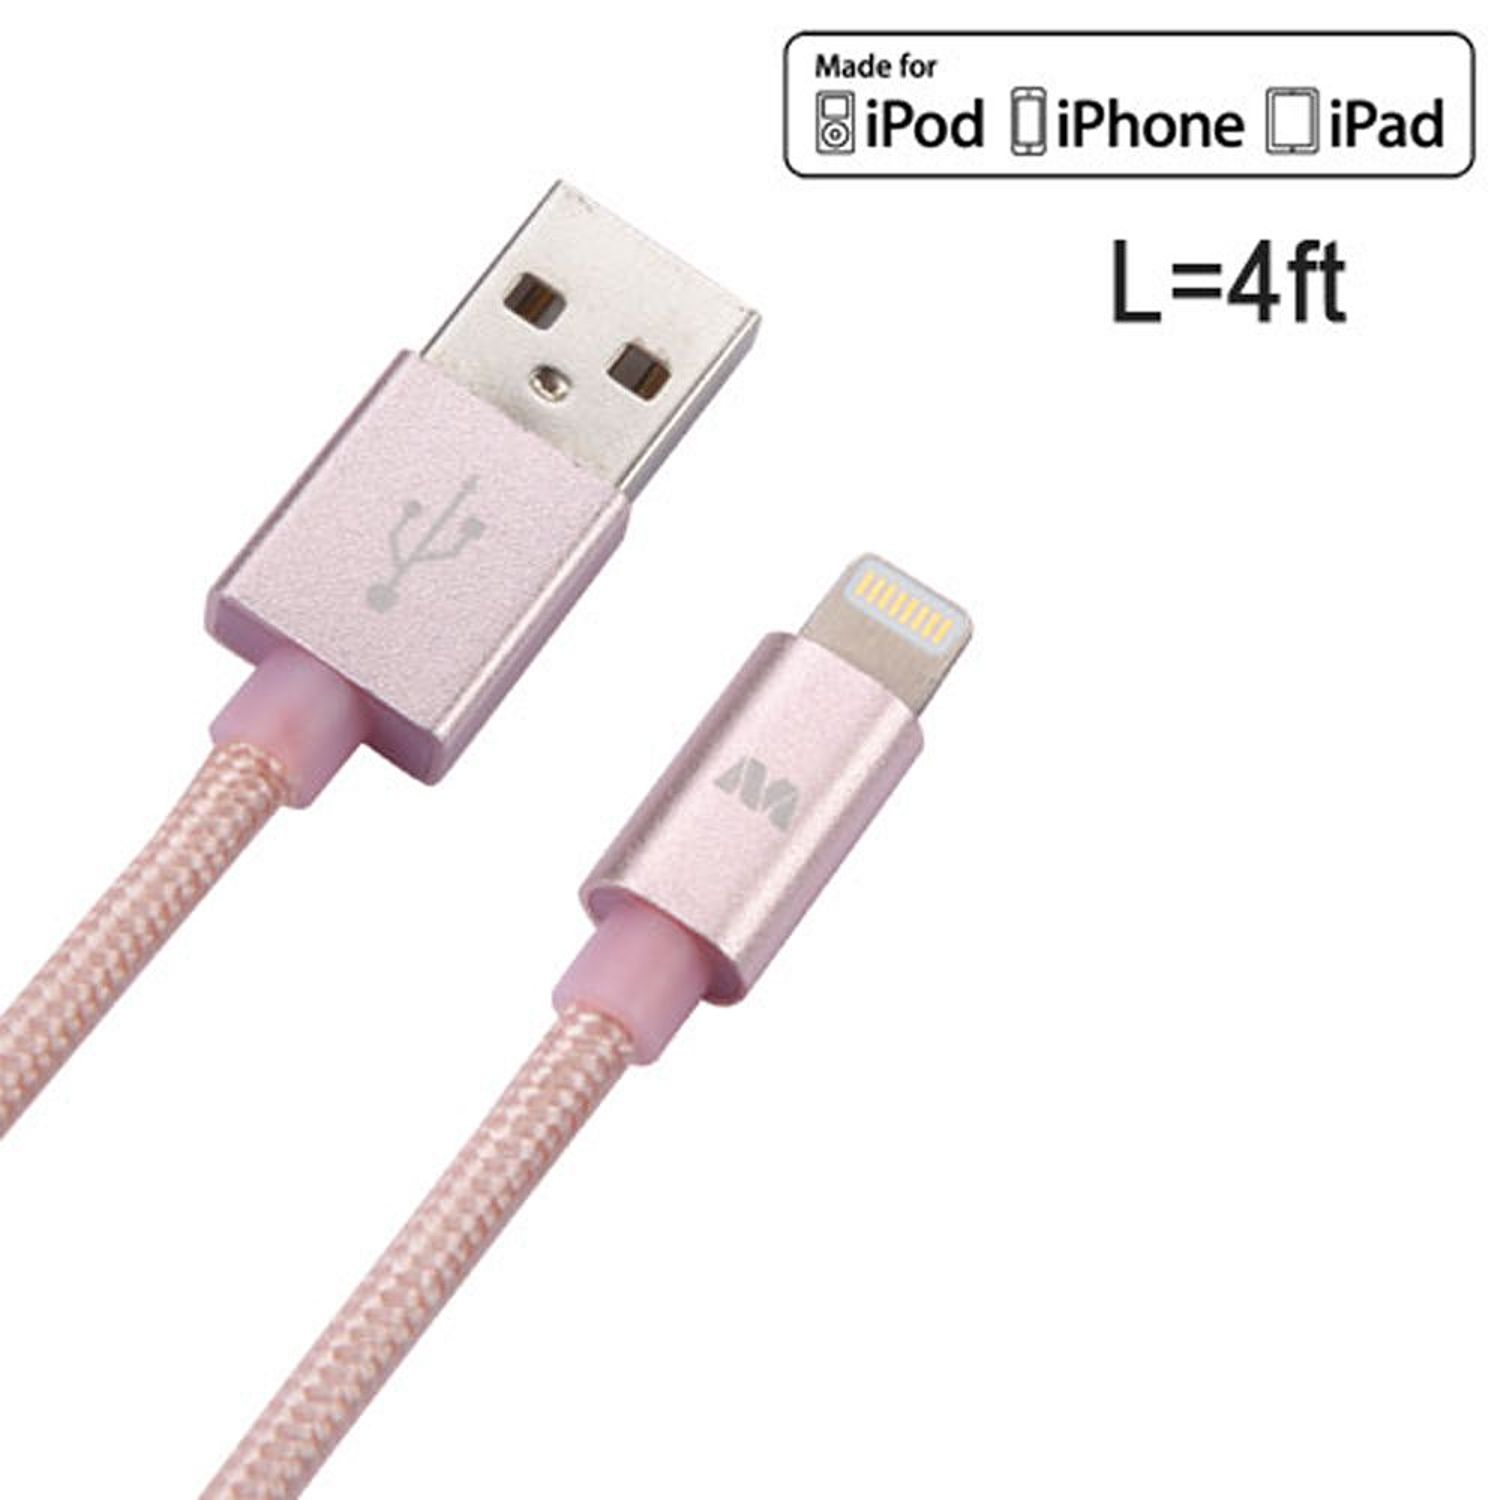 "iPhone Charger Cable by Insten 4 Feet 4' Rose Gold Apple MFi Certified Braided Lightning Durable Cable Charger Cord for iPhone X 8 8+ Plus 7 7+ 6 6+ 6s 6s+ 5s 5 SE iPad Air Mini Pro 12.9"" 10.5"" 9.7"""